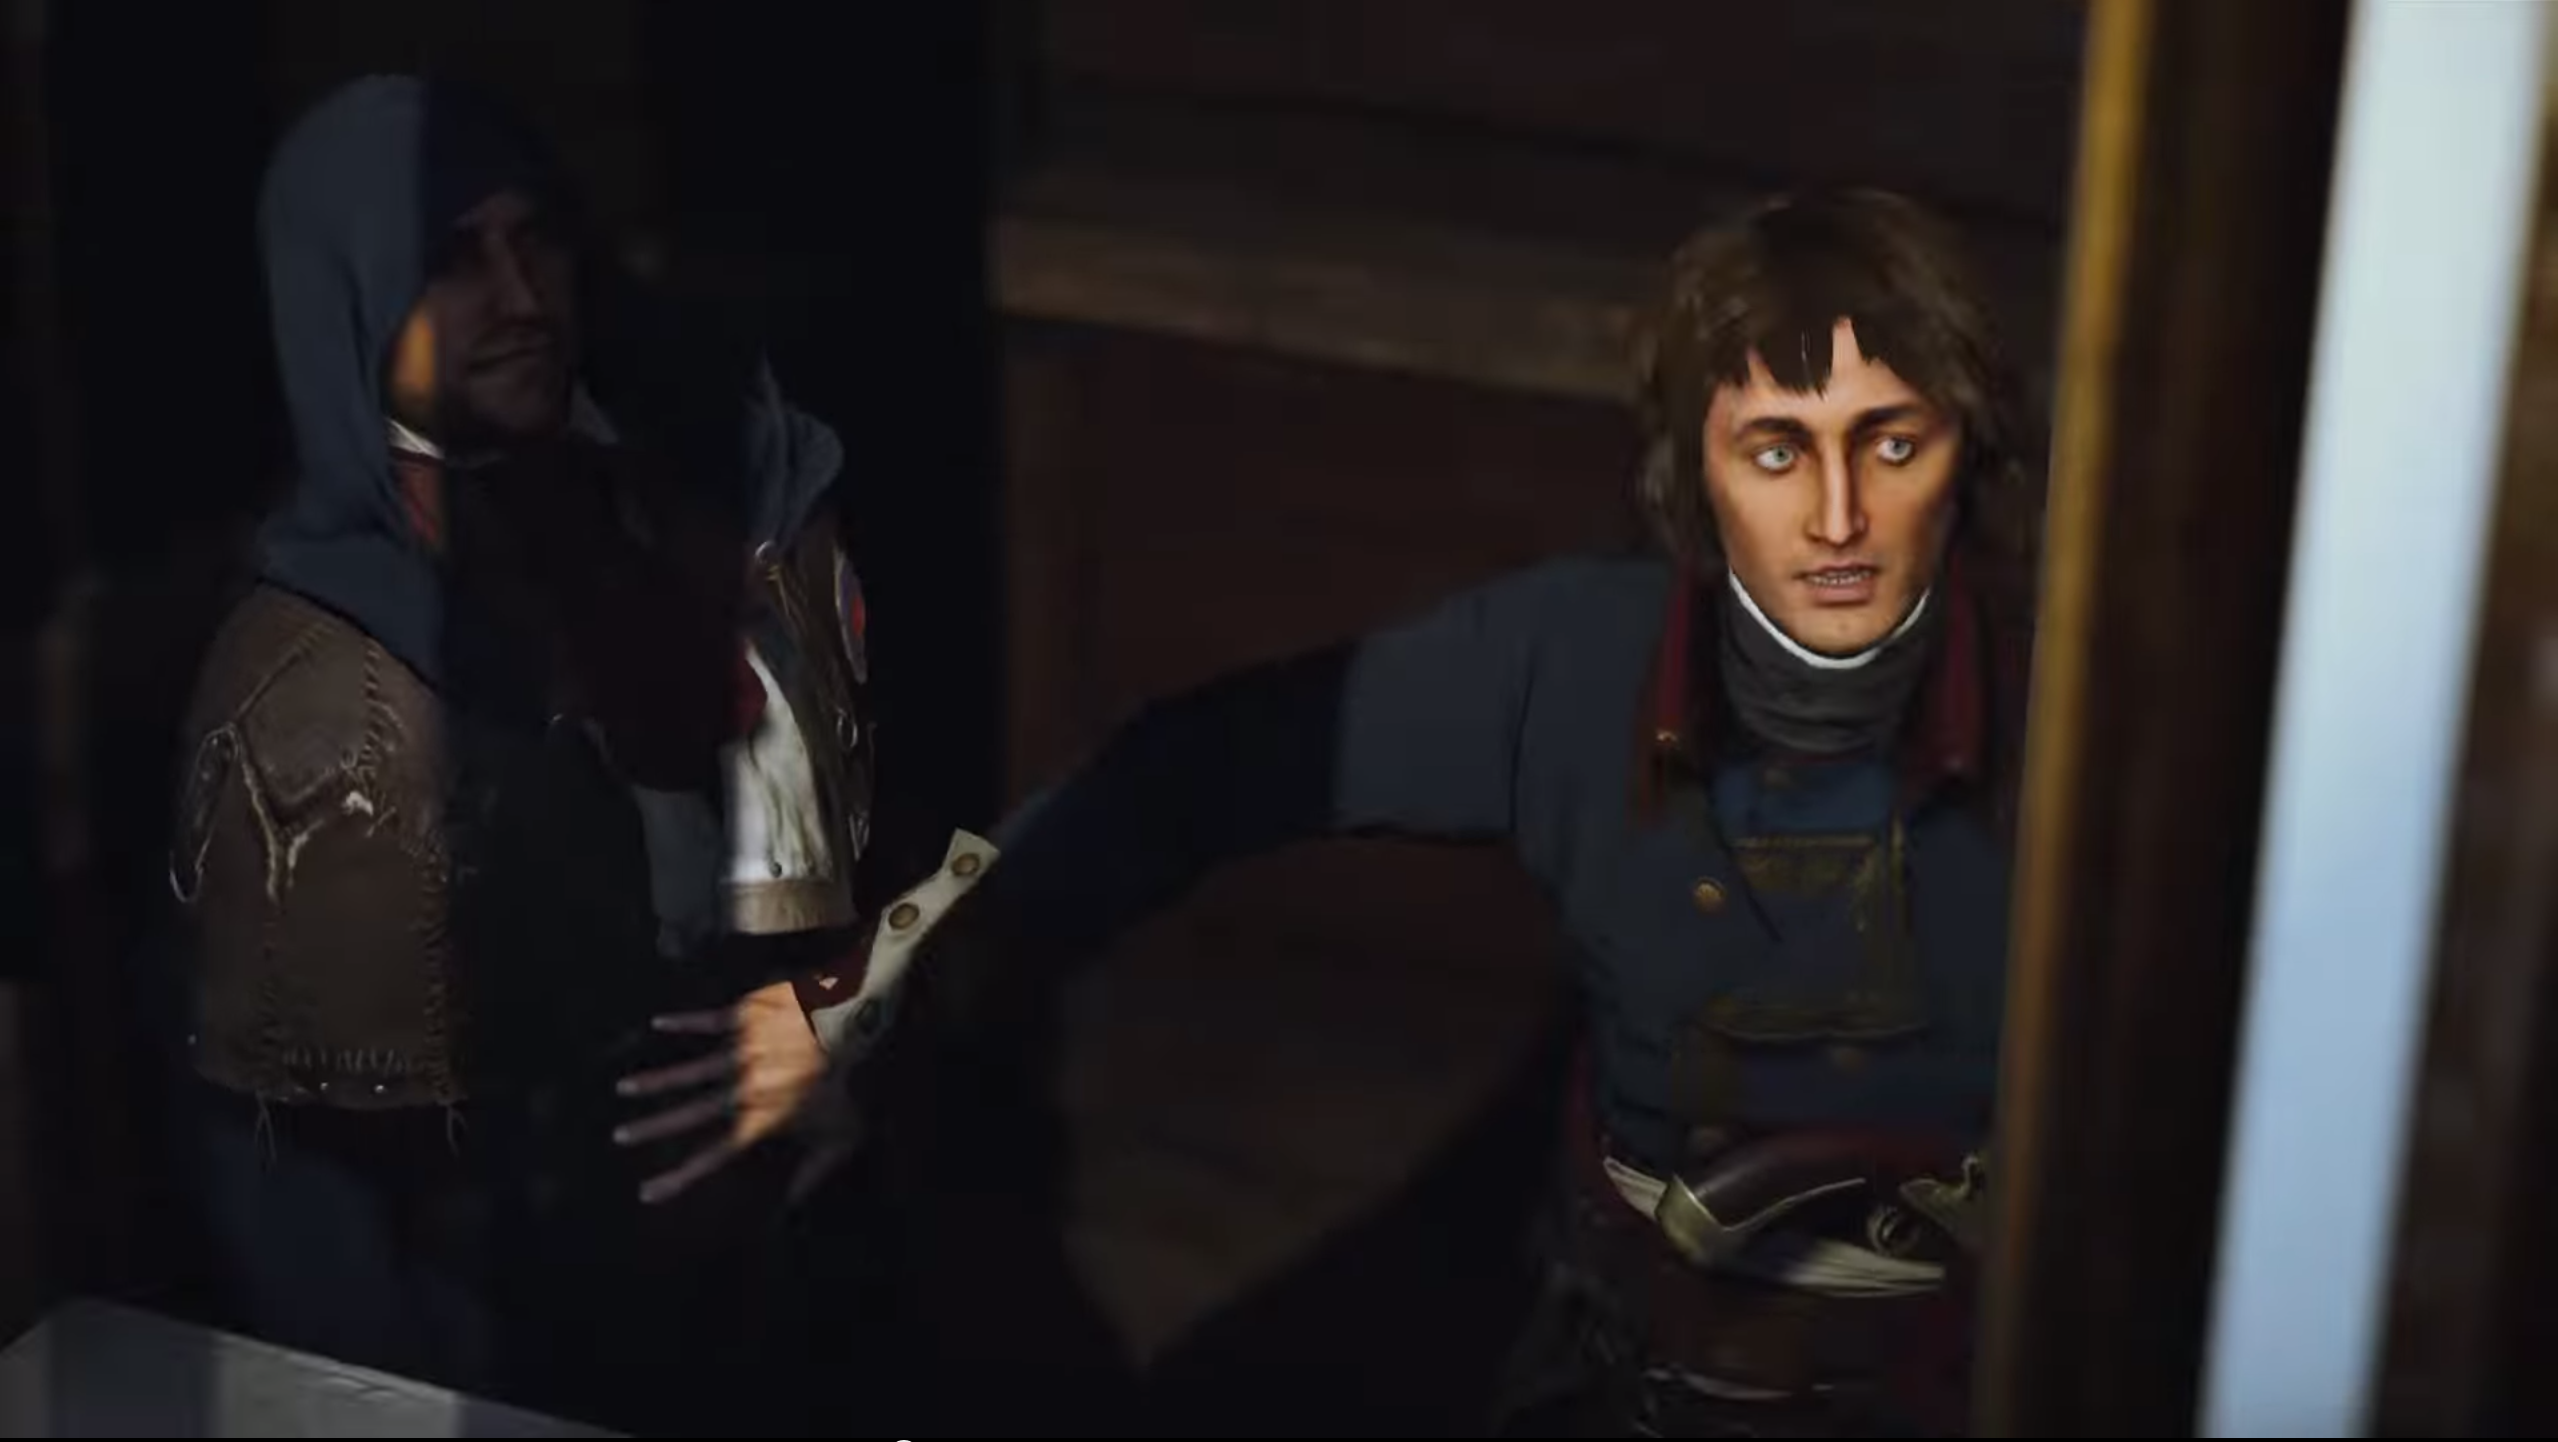 napoleon heroes and villains napoleon and lafayette disney versus  image napoleon png assassin s creed wiki fandom powered by wikia 09 34 24 2014